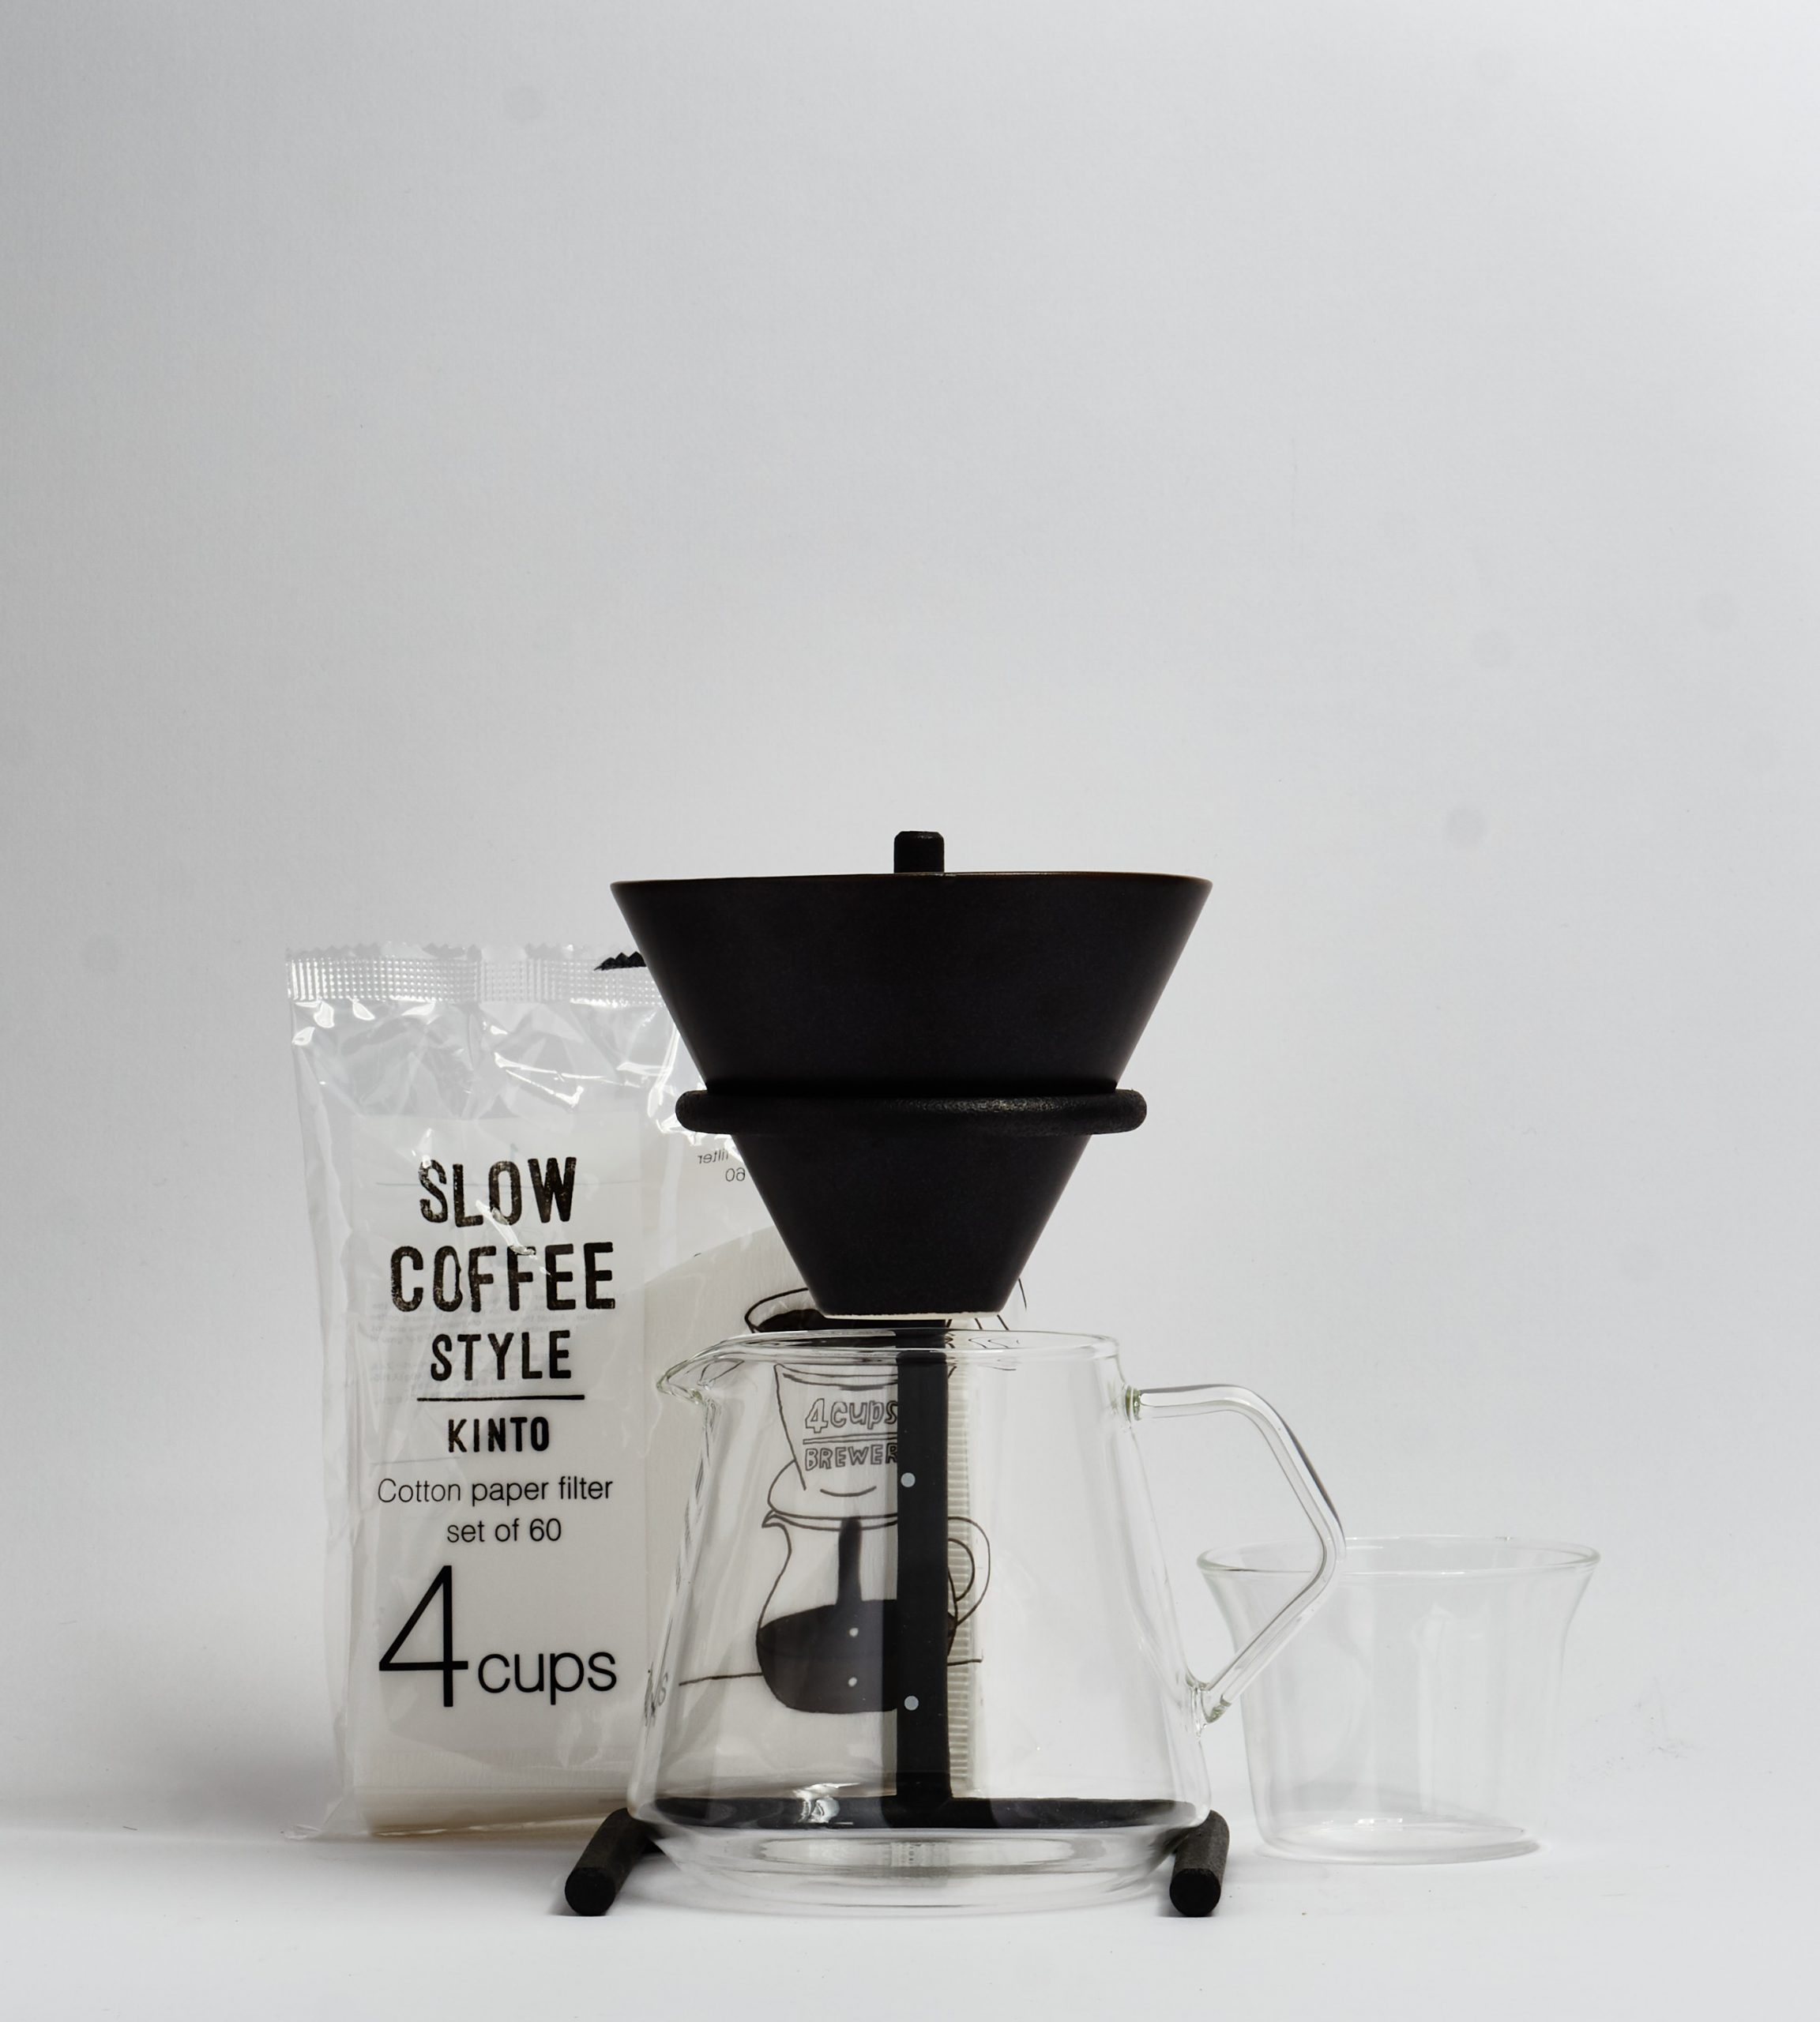 Slow Coffee Style, Filter Set, 4 cups-prev-1